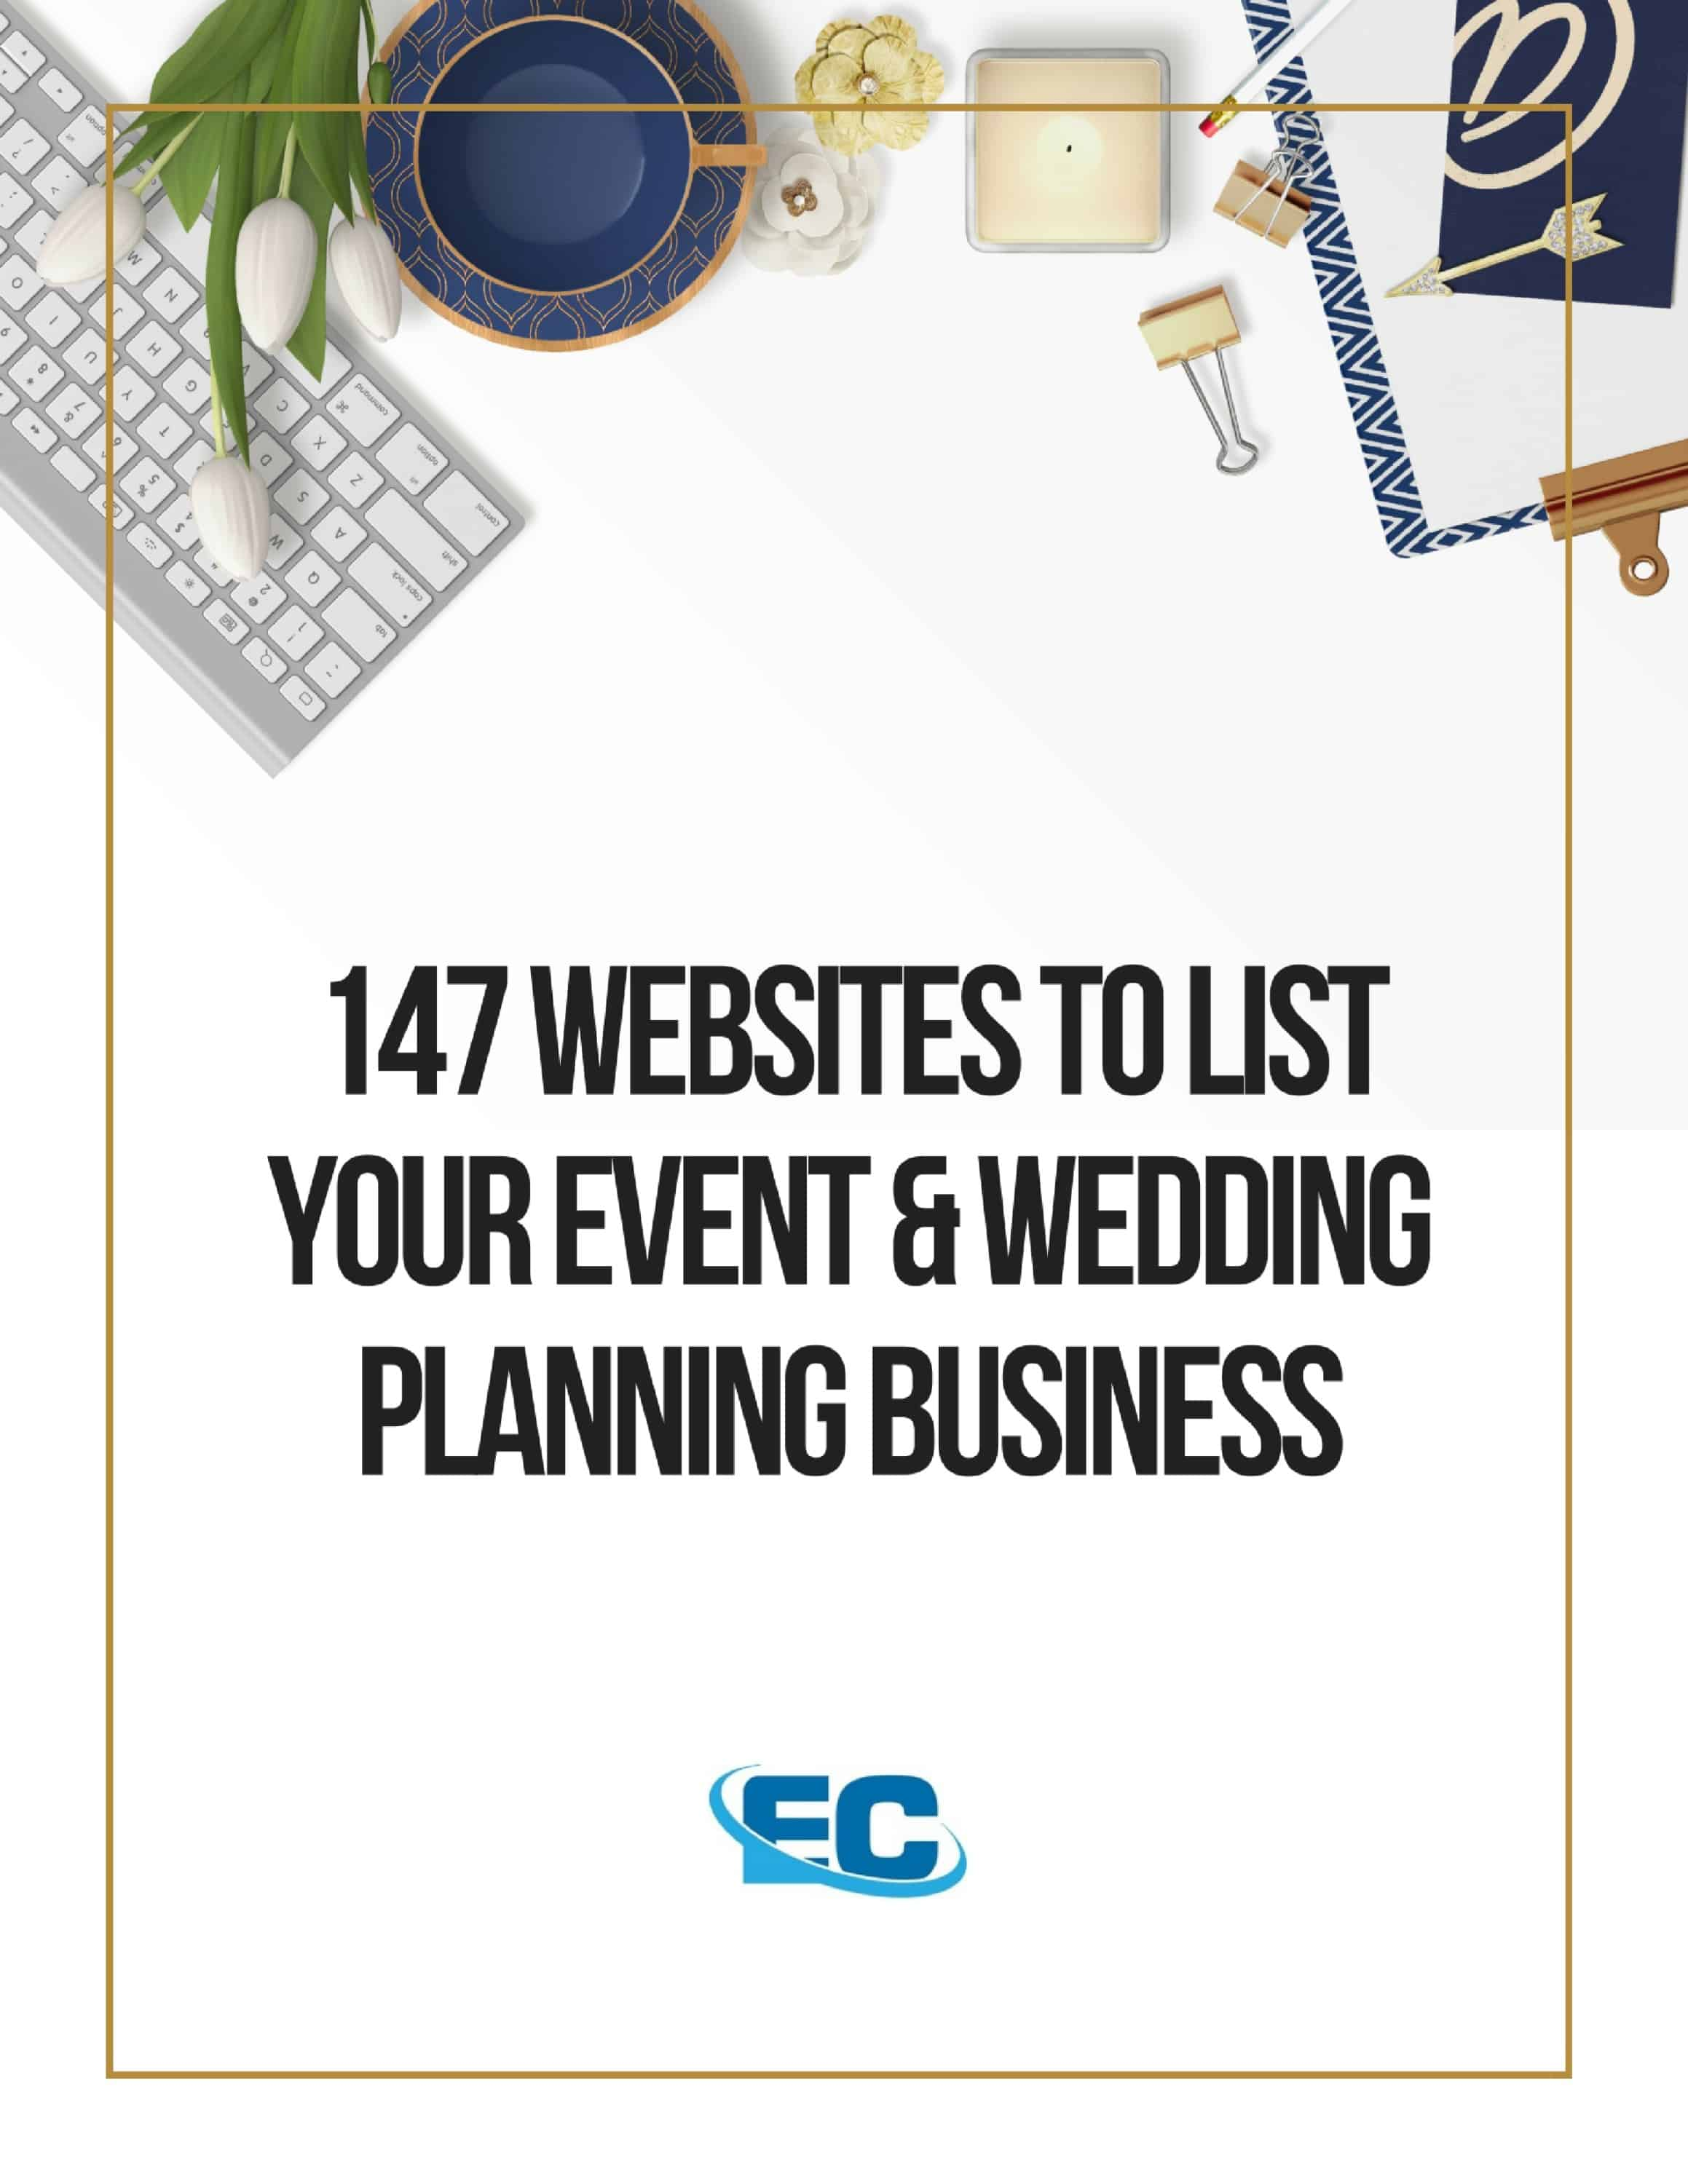 Resources event planning certificate finding clients for your event planning business can be difficult in this list i share over 140 event and wedding planning websites and blogs where you can 1betcityfo Choice Image